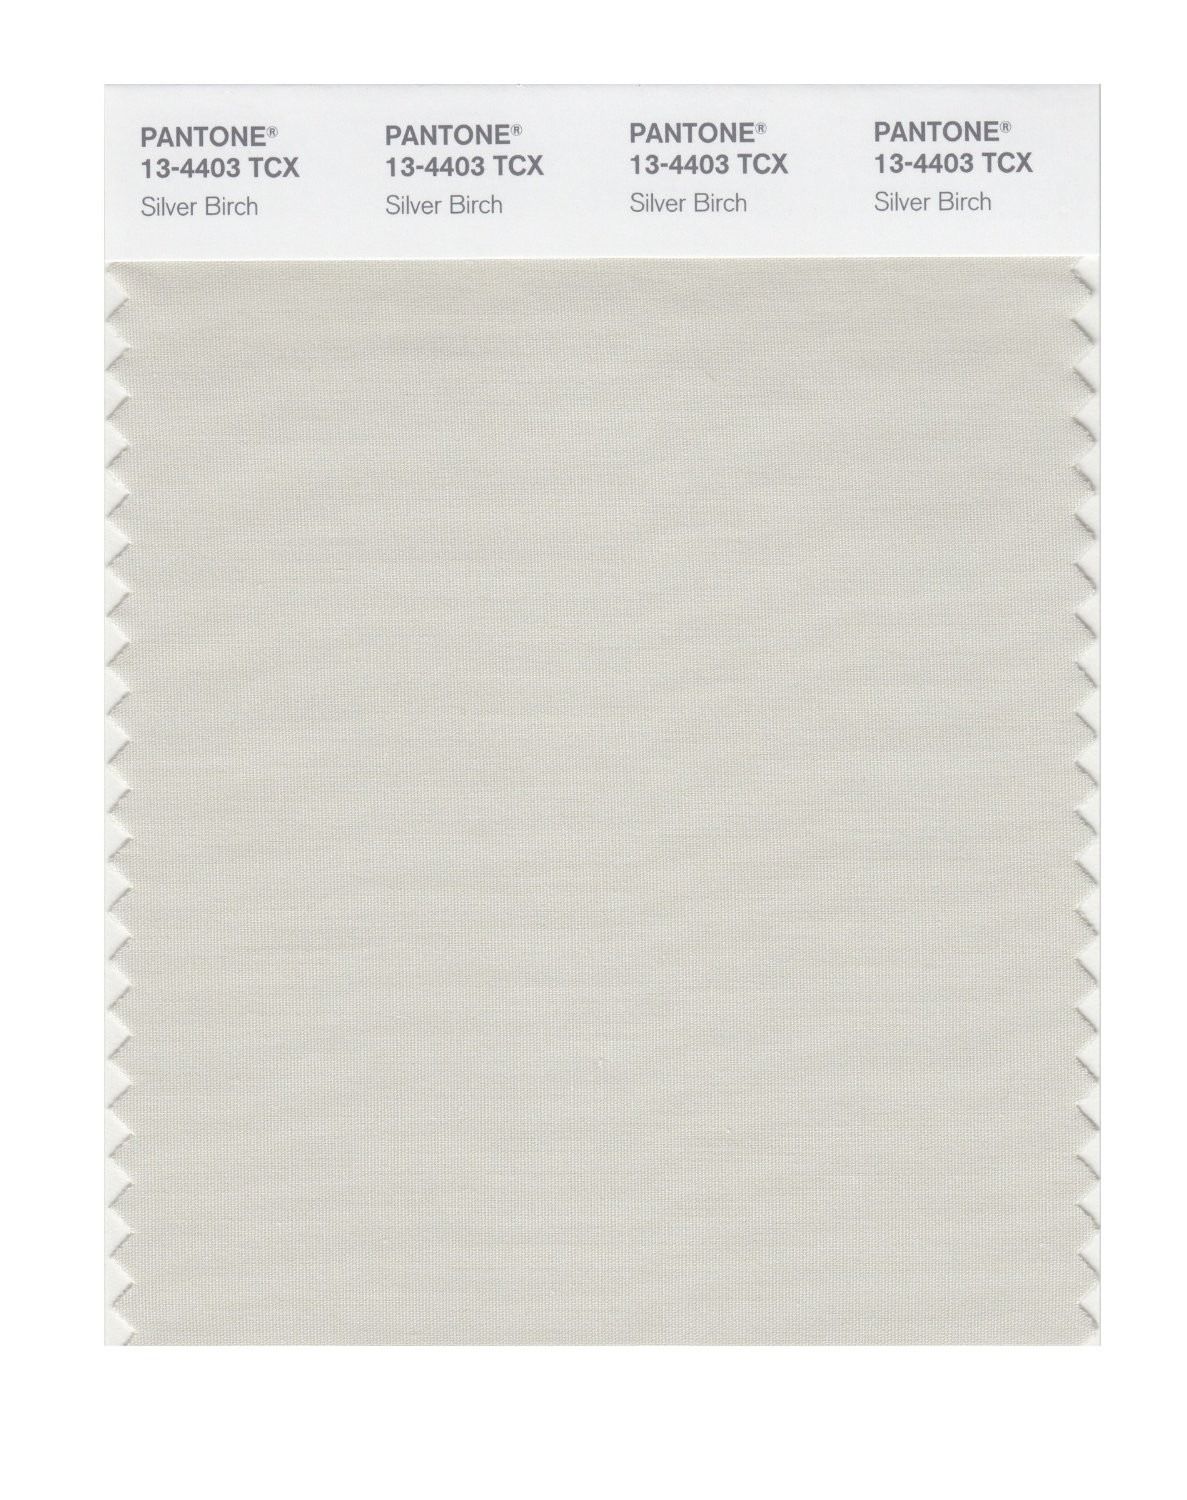 Pantone 13-4403 TCX Swatch Card Silver Birch